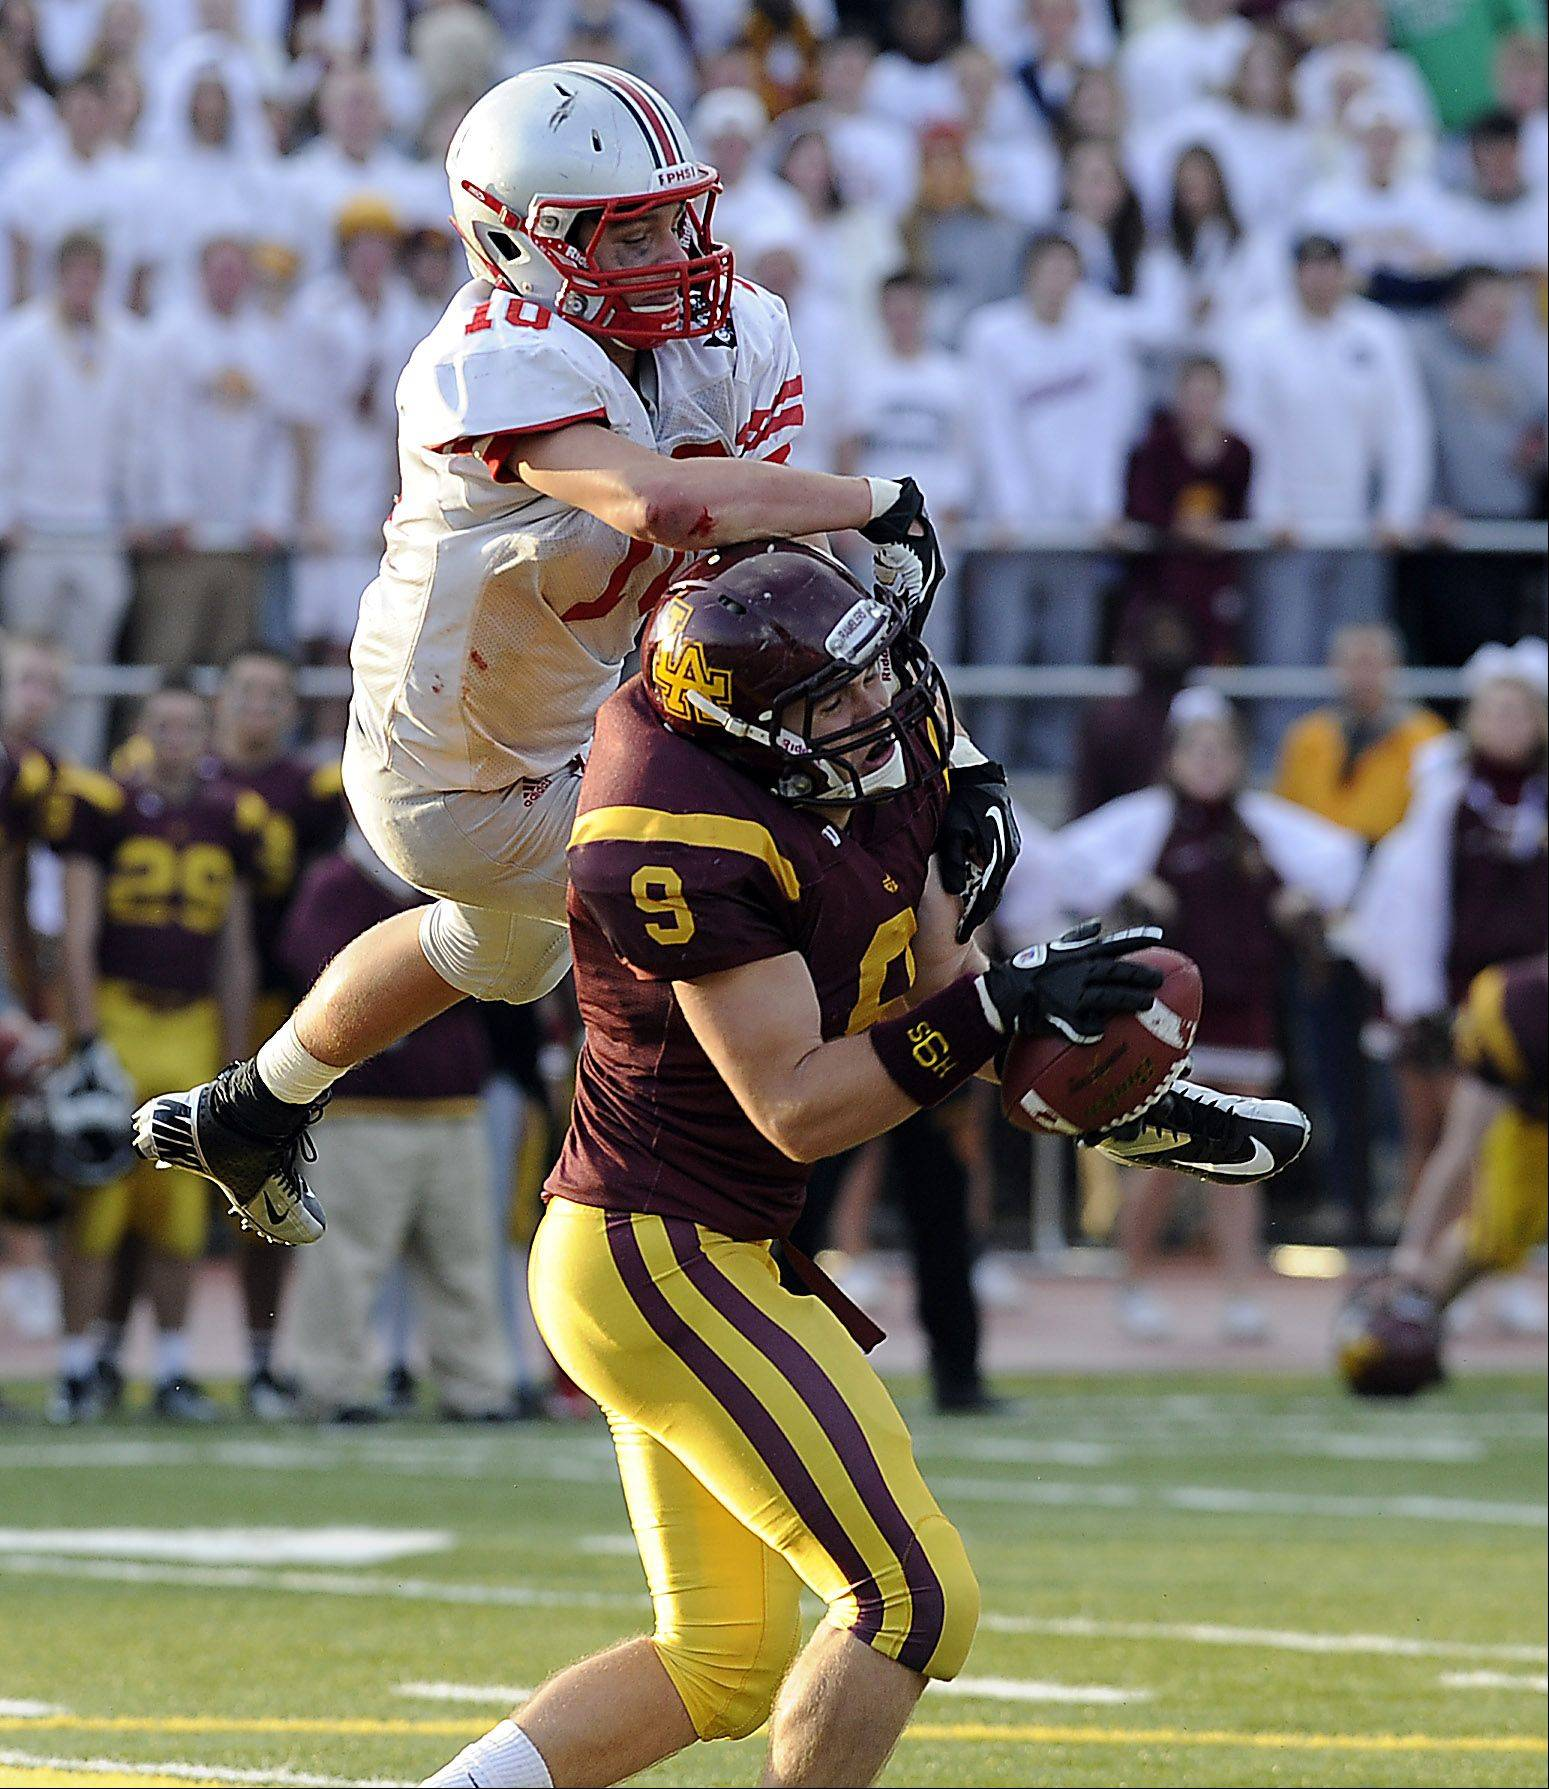 Palatine's Cam Kuksa loses the ball in this interception by Loyola's Cody Sullivan at the Class 8A playoff quarterfinals Saturday.